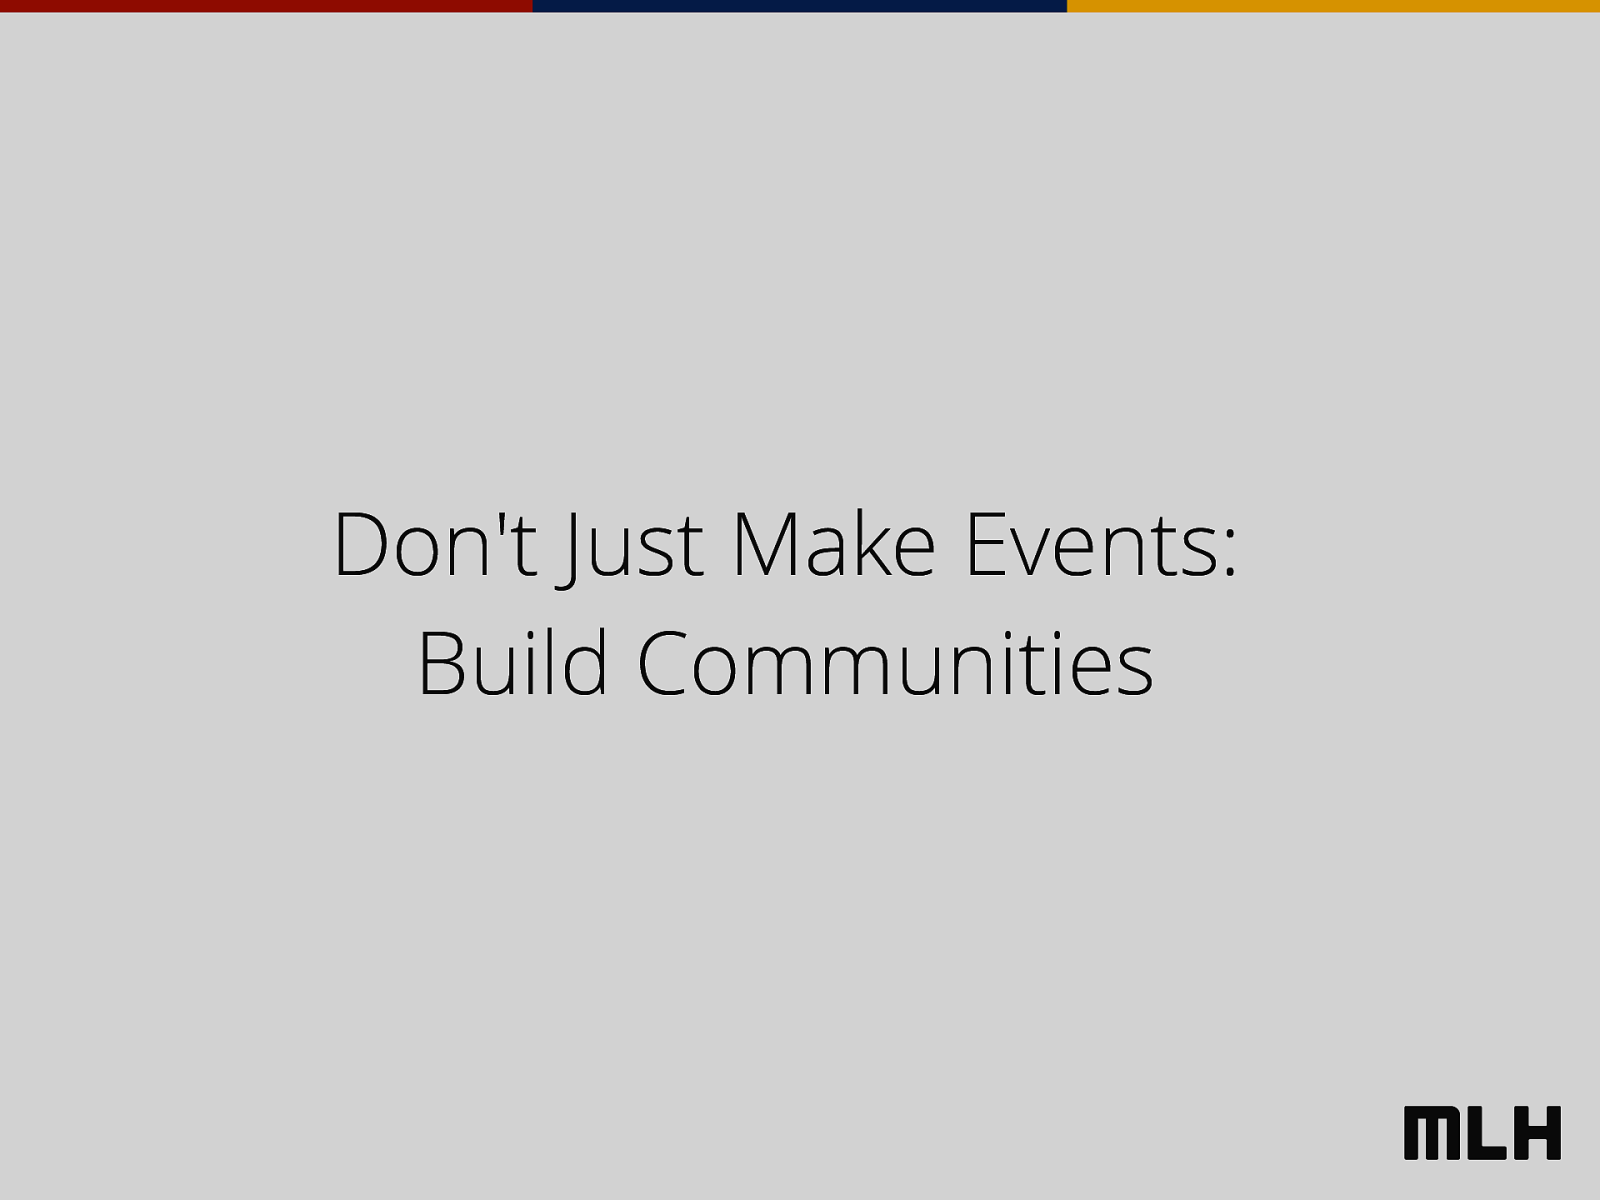 Don't Just Make Events - Build Communities